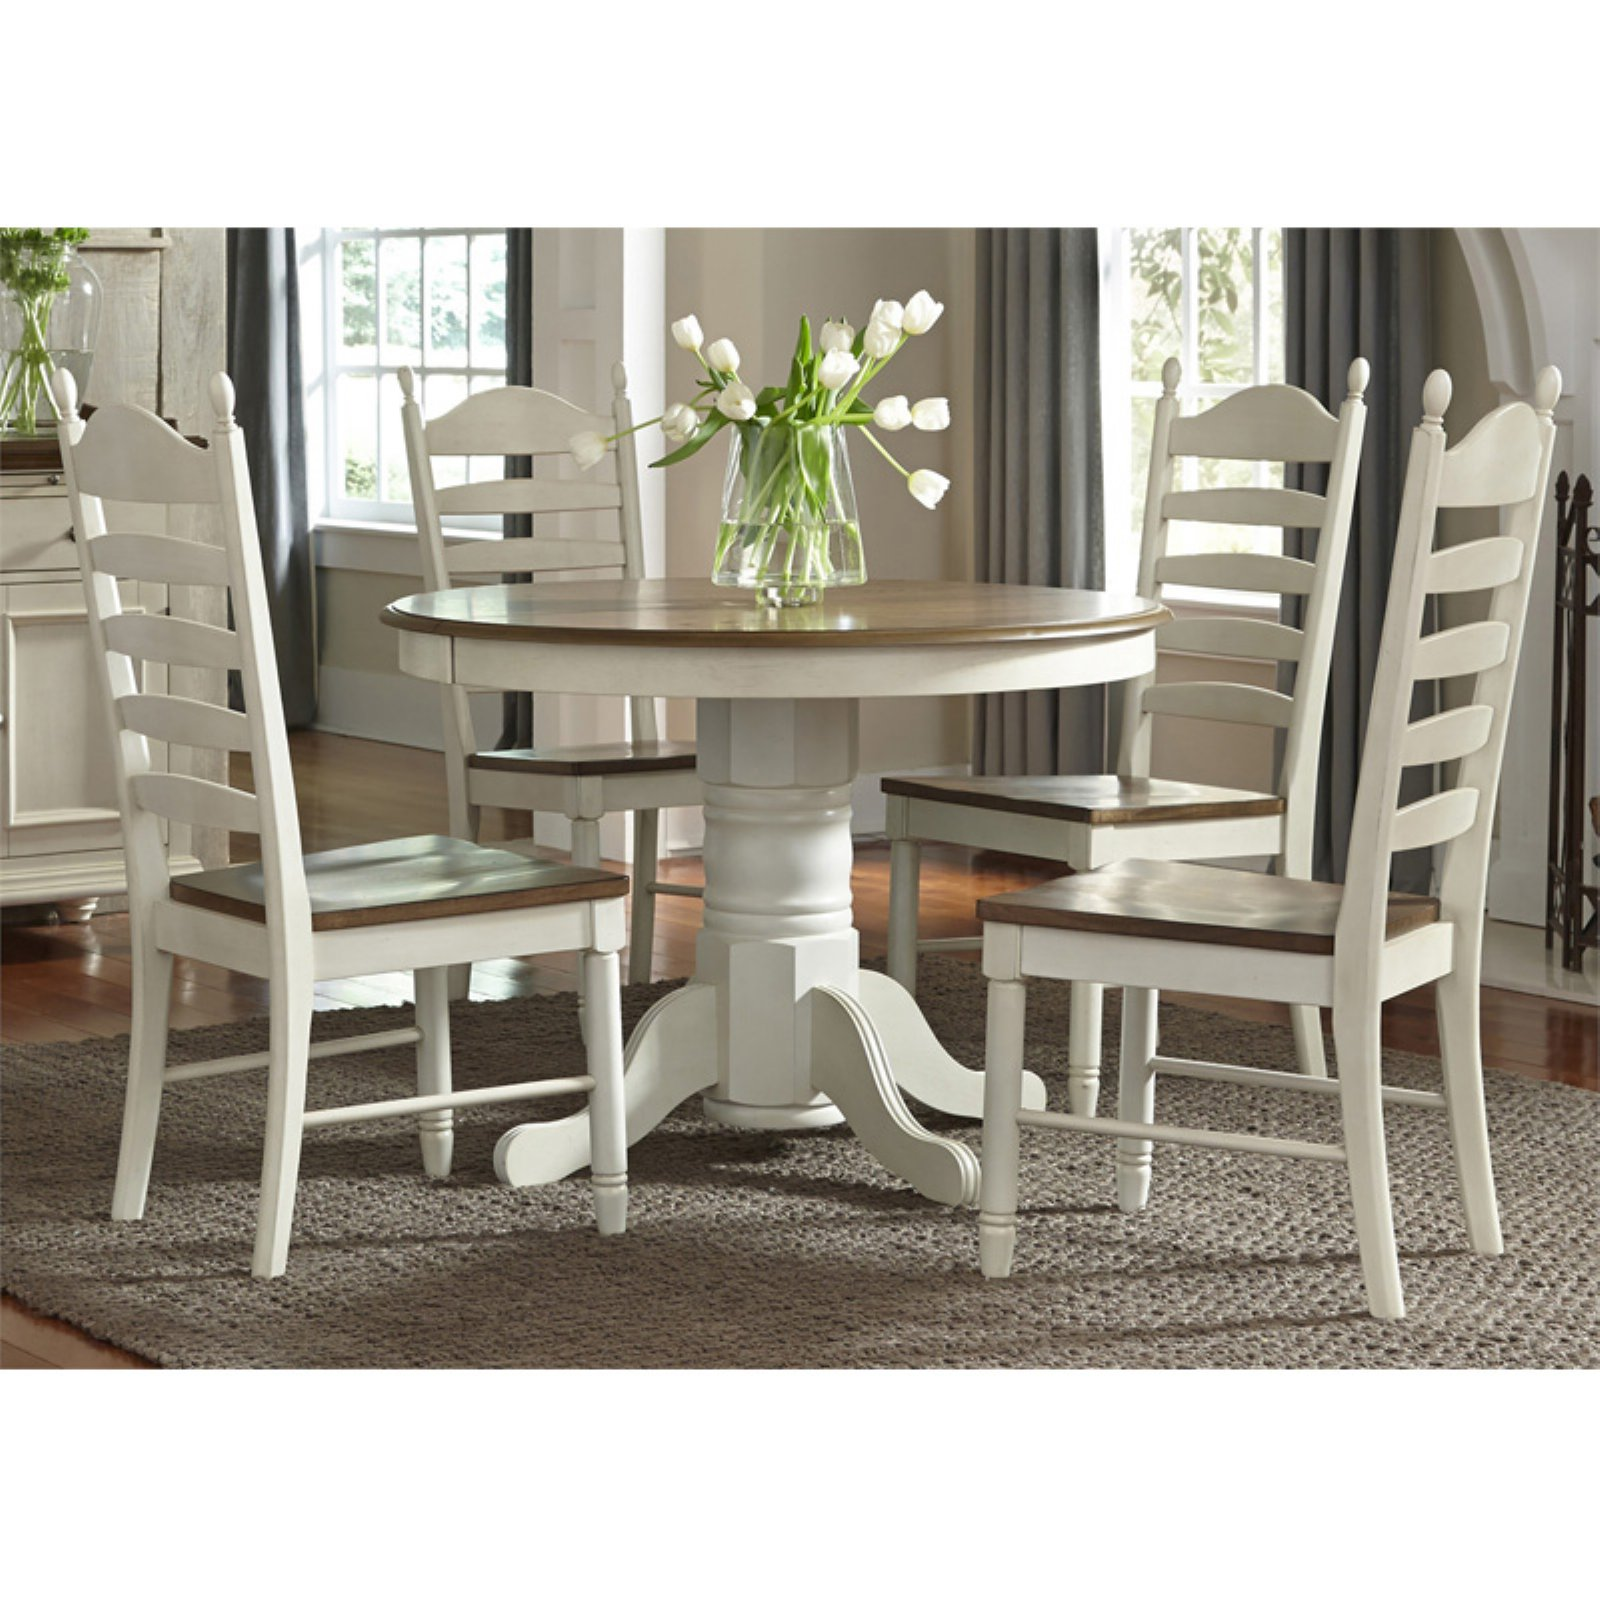 Liberty Furniture Industries Springfield 5 Piece Pedestal Extension Dining Table Set